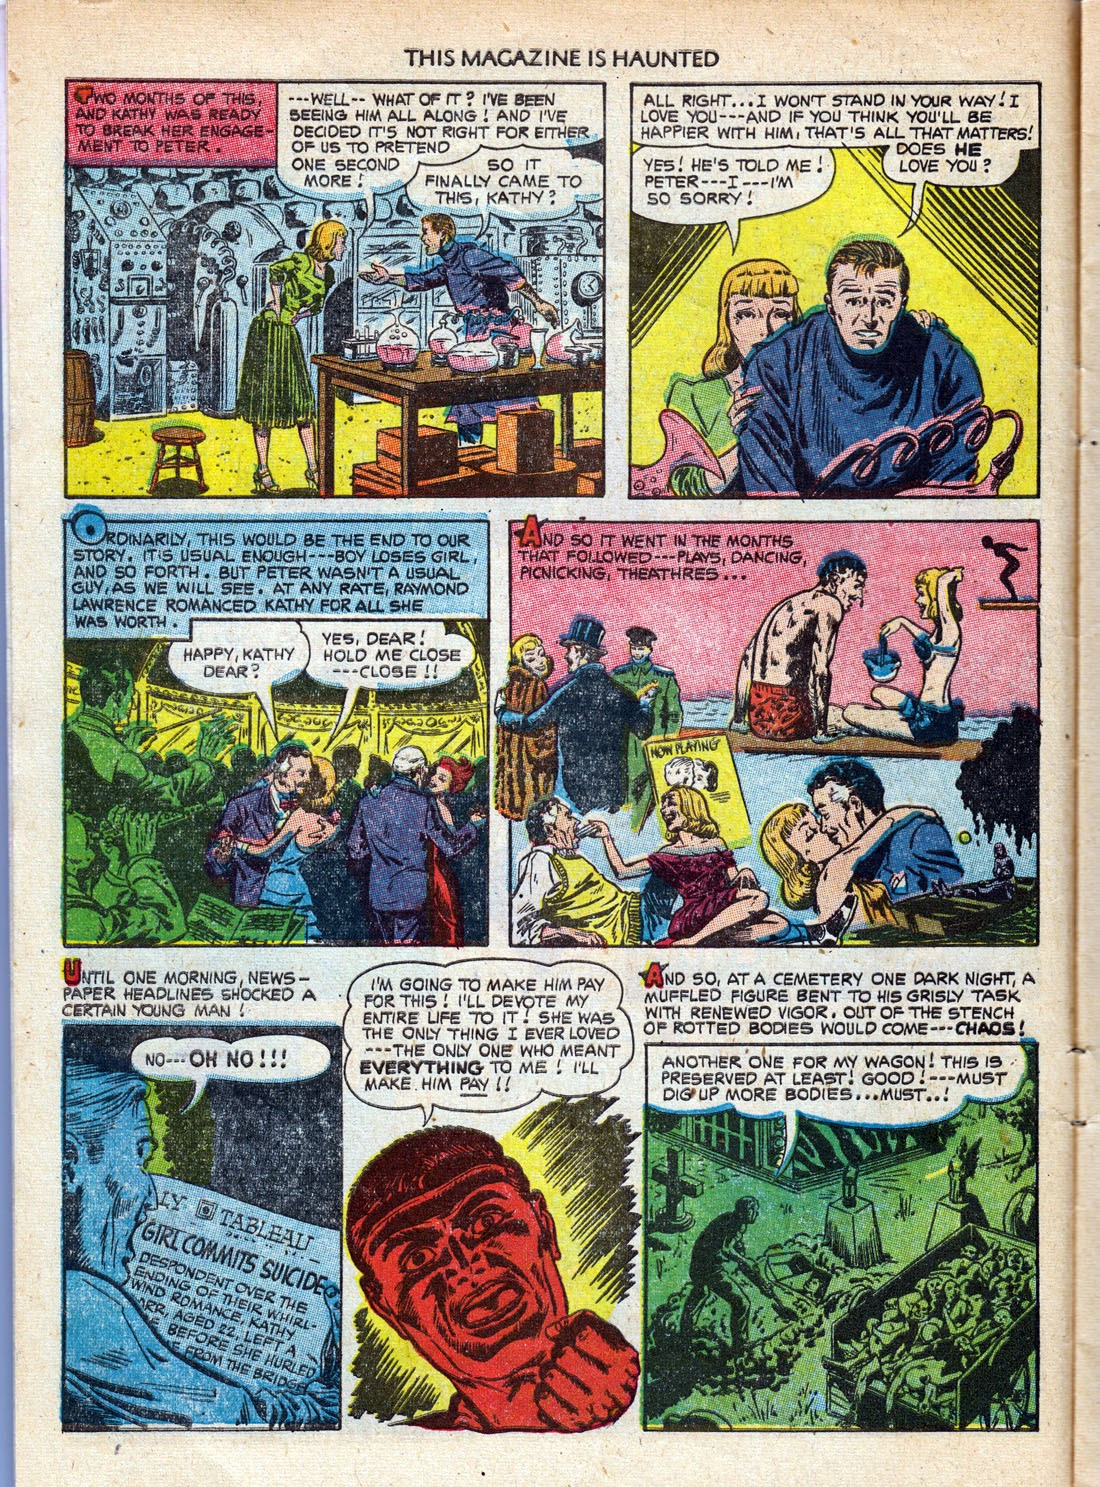 Read online This Magazine Is Haunted comic -  Issue #11 - 6